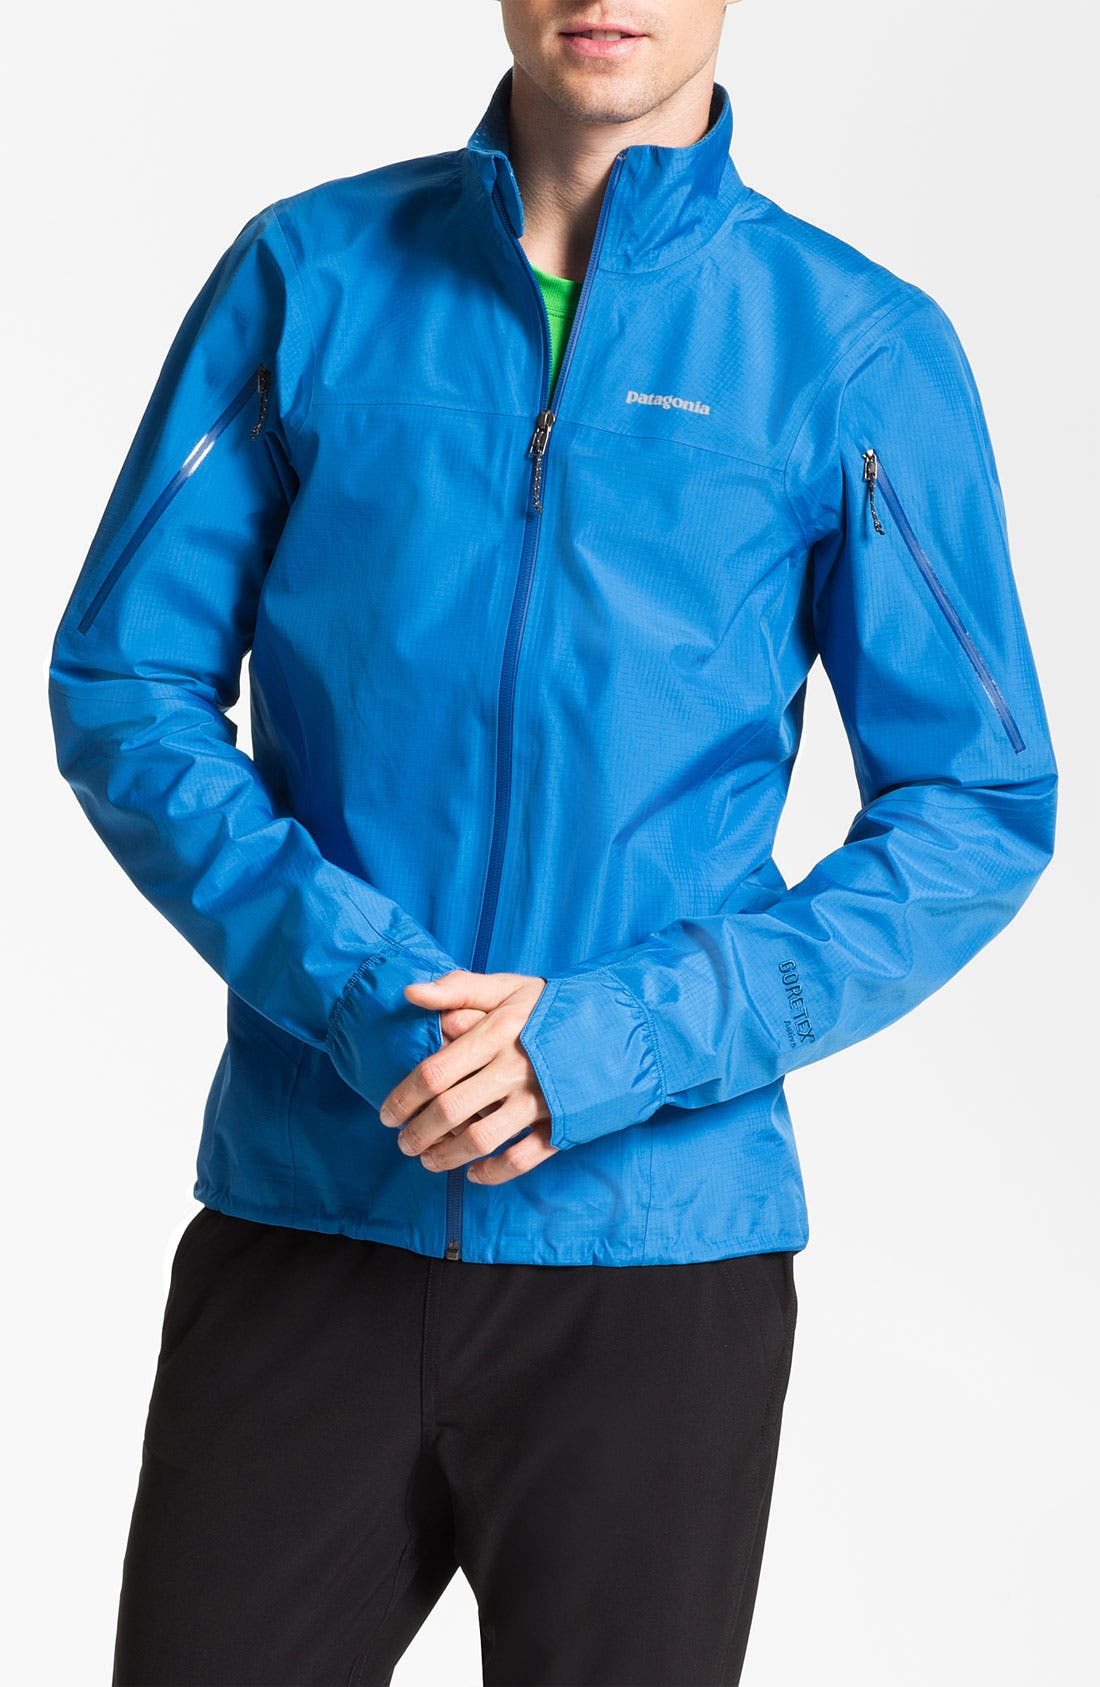 Alternate Image 1 Selected - Patagonia 'Light Flyer' Jacket